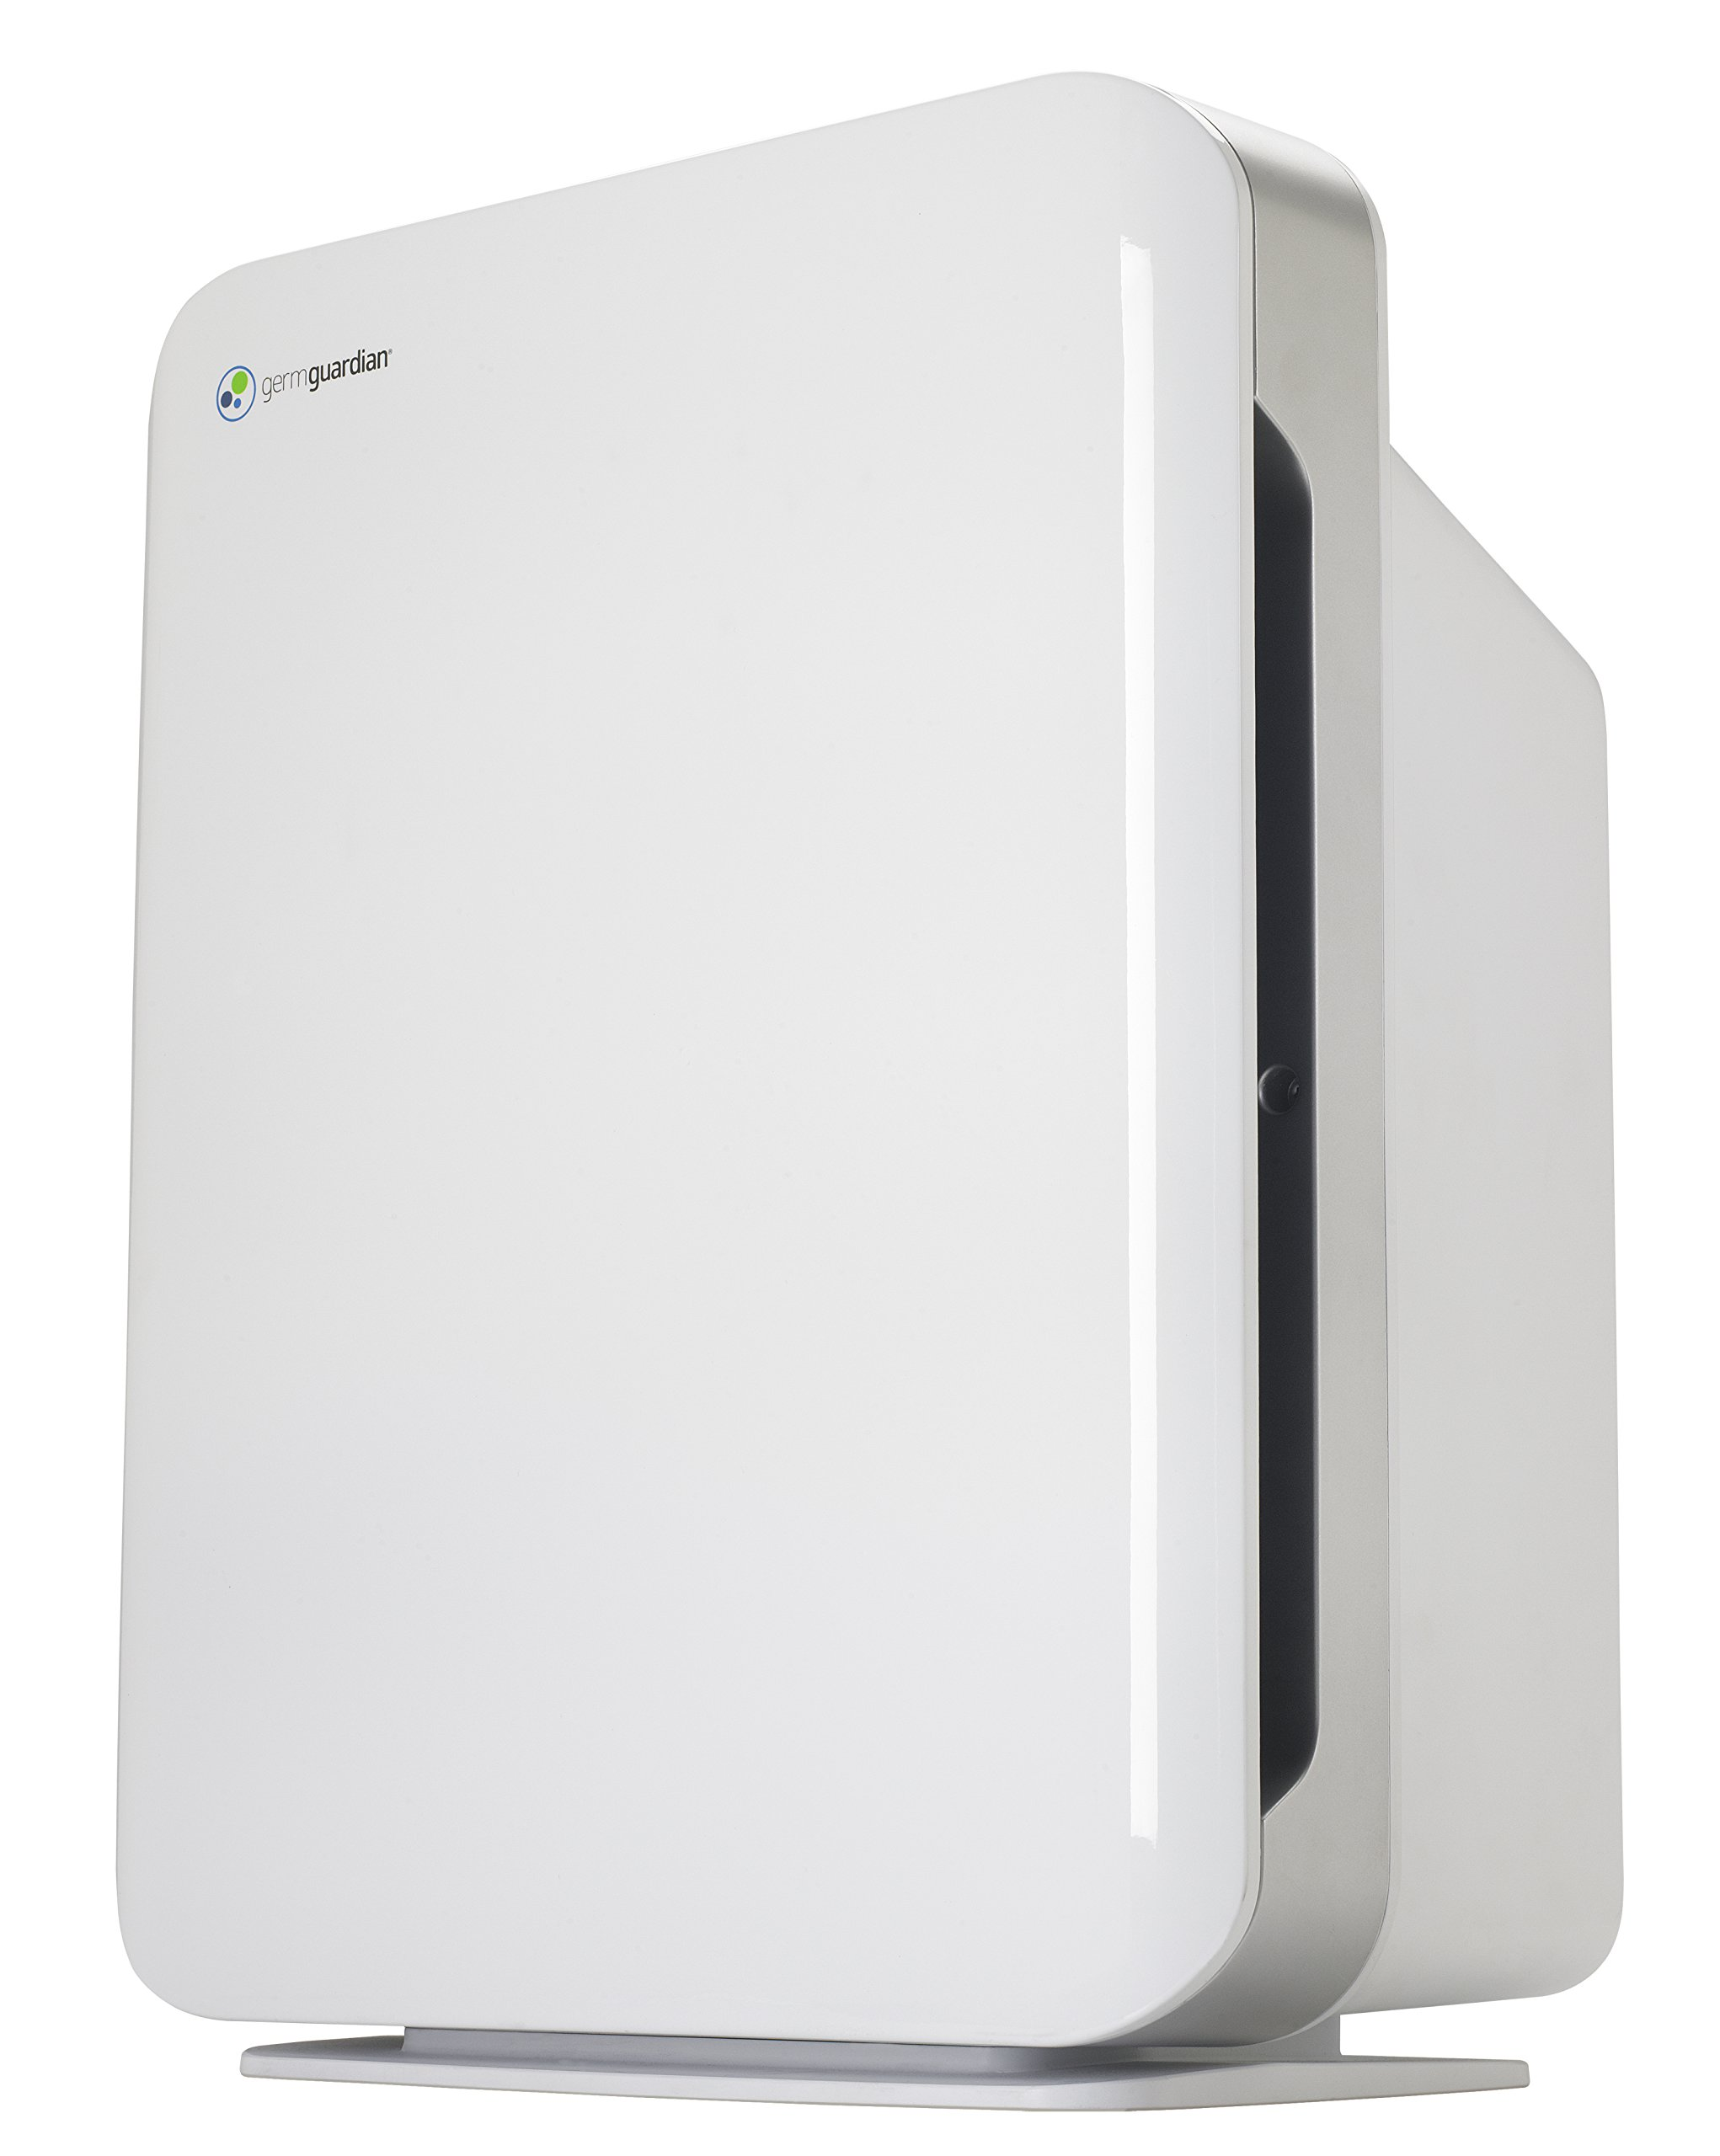 GermGuardian AC5900WCA Hi-Performance Air Purifier with True HEPA Filter and UVC for Allergens, Odors and Germs, 200+ CADR, Rooms up to 312 sq ft, Germ Guardian Large Room Air Purifier